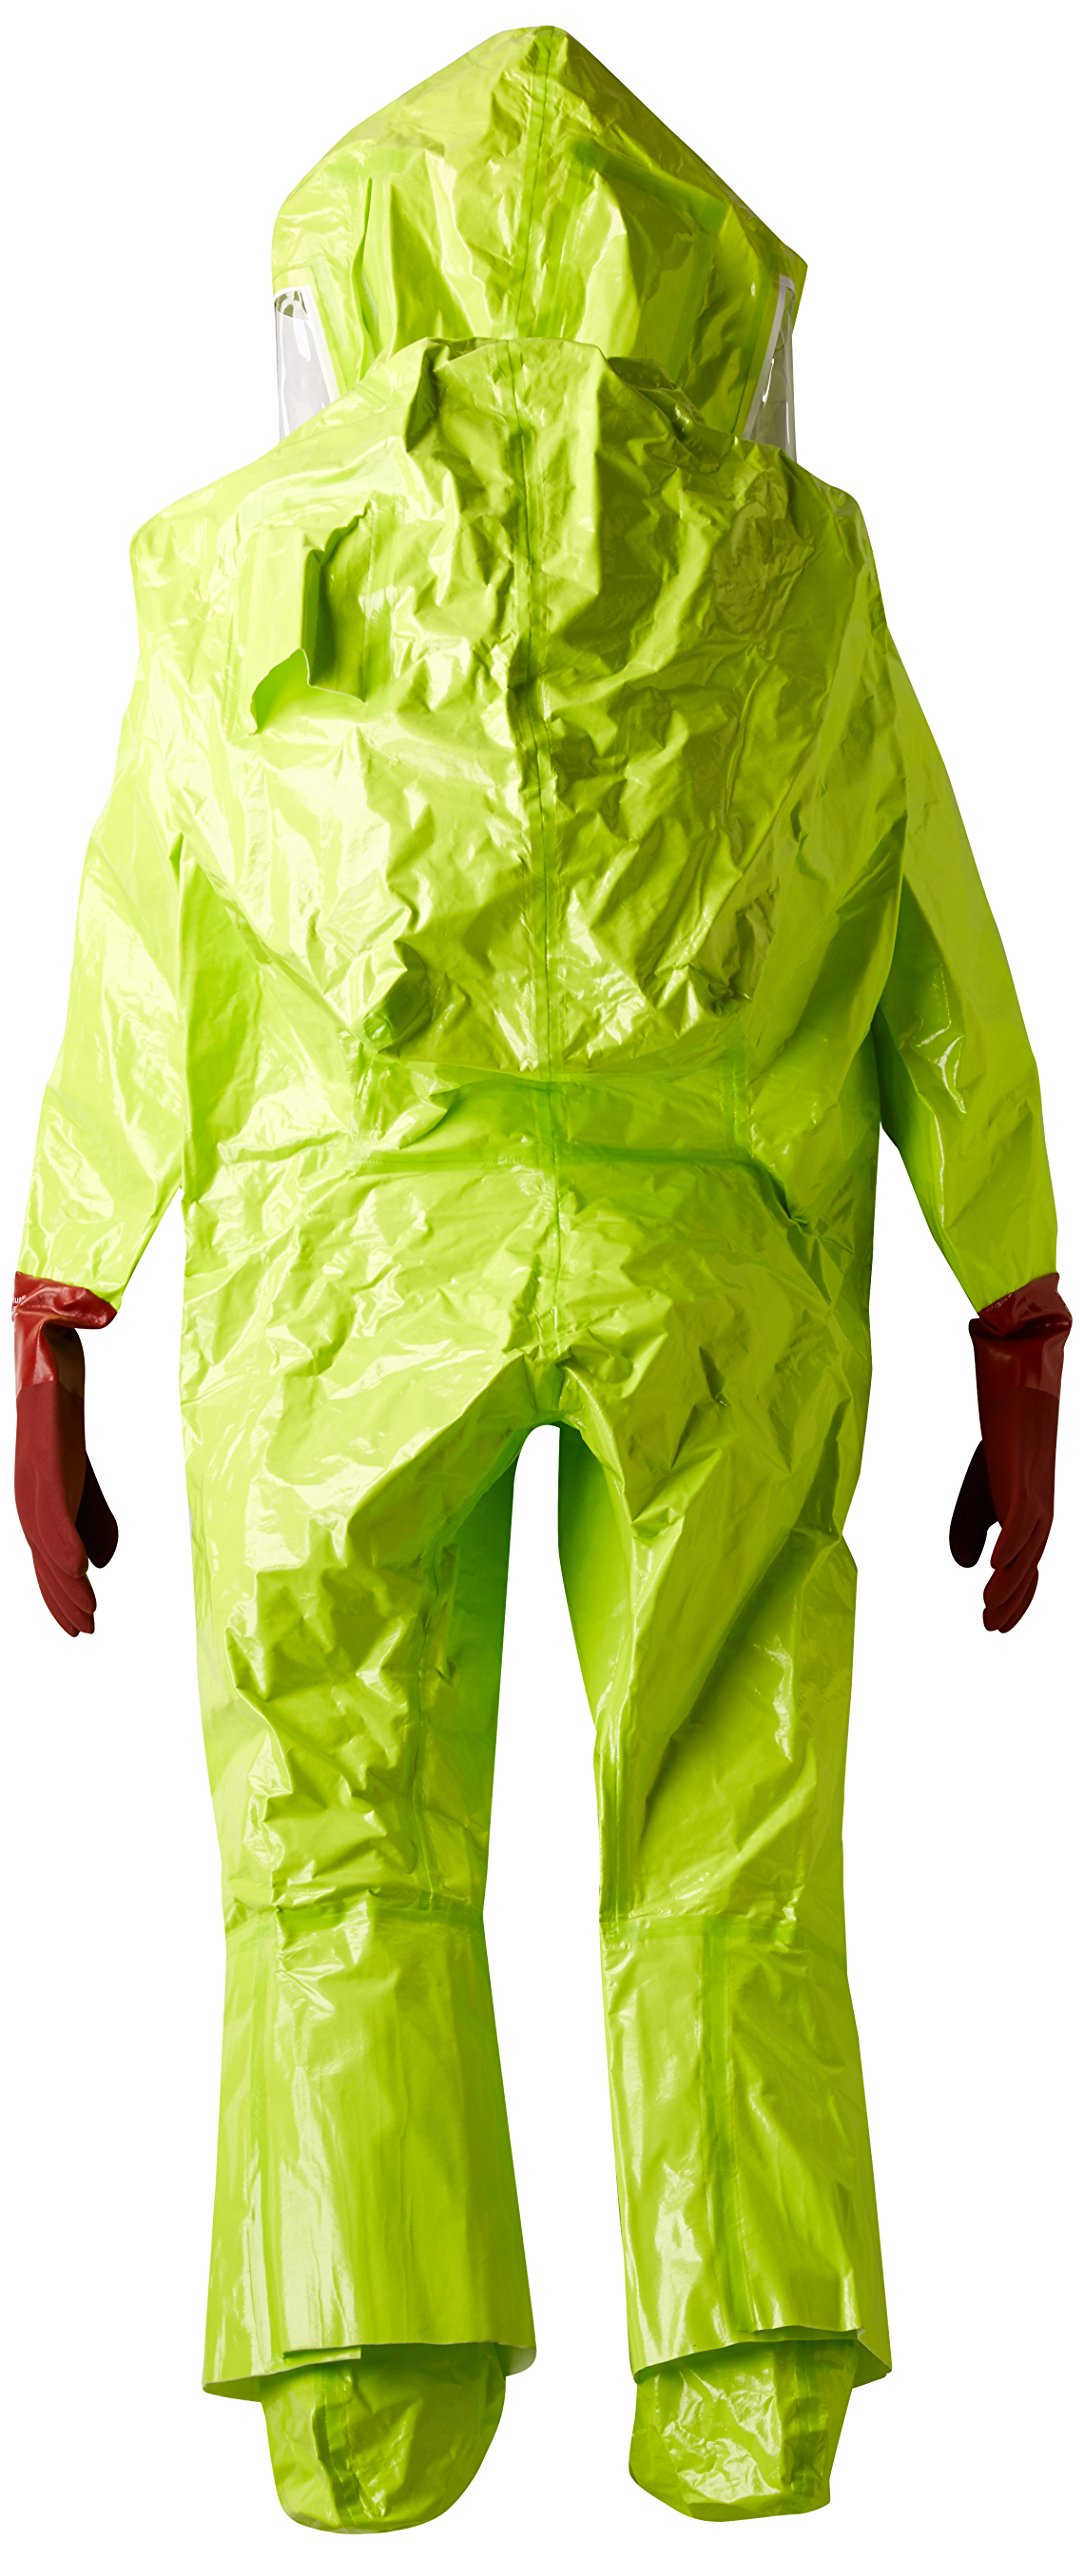 Dupont TK586TLYXL000100 EncapTrainSuit, Expanded Back, Front Entry, Taped Seams, X-Large, Lime Yellow by DuPont (Image #3)